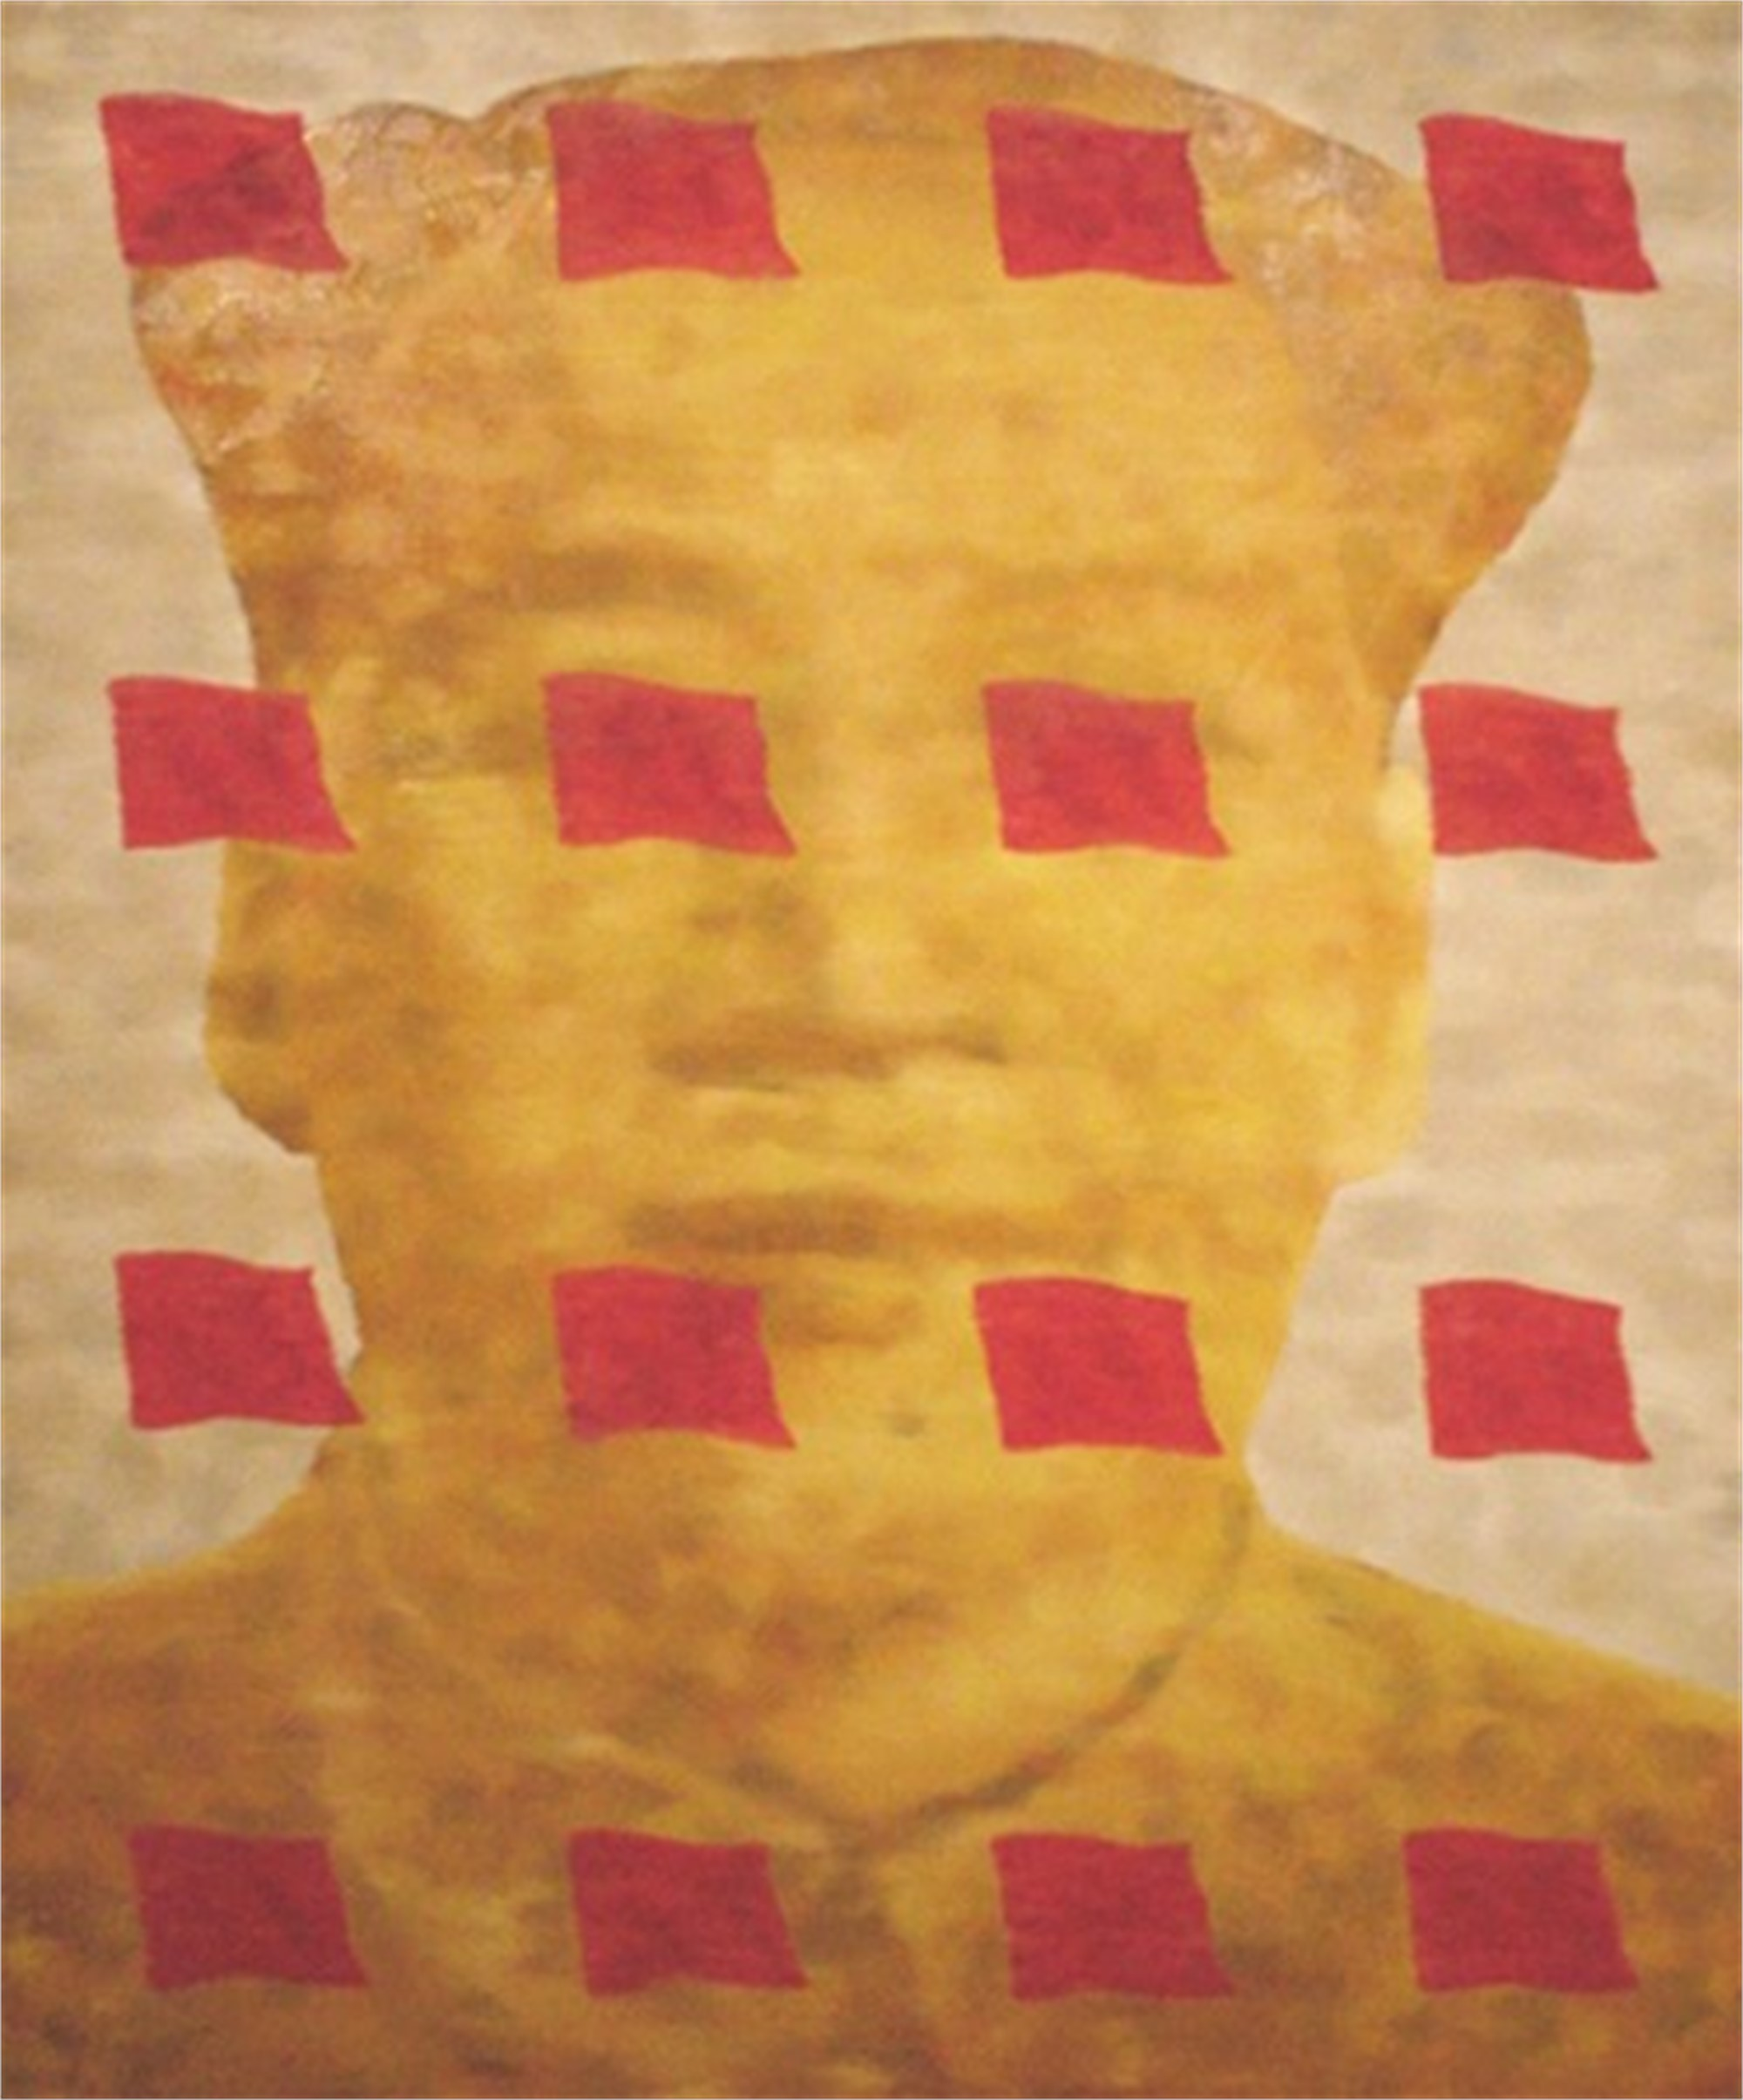 Mao #1 by Contemporary Chinese Art